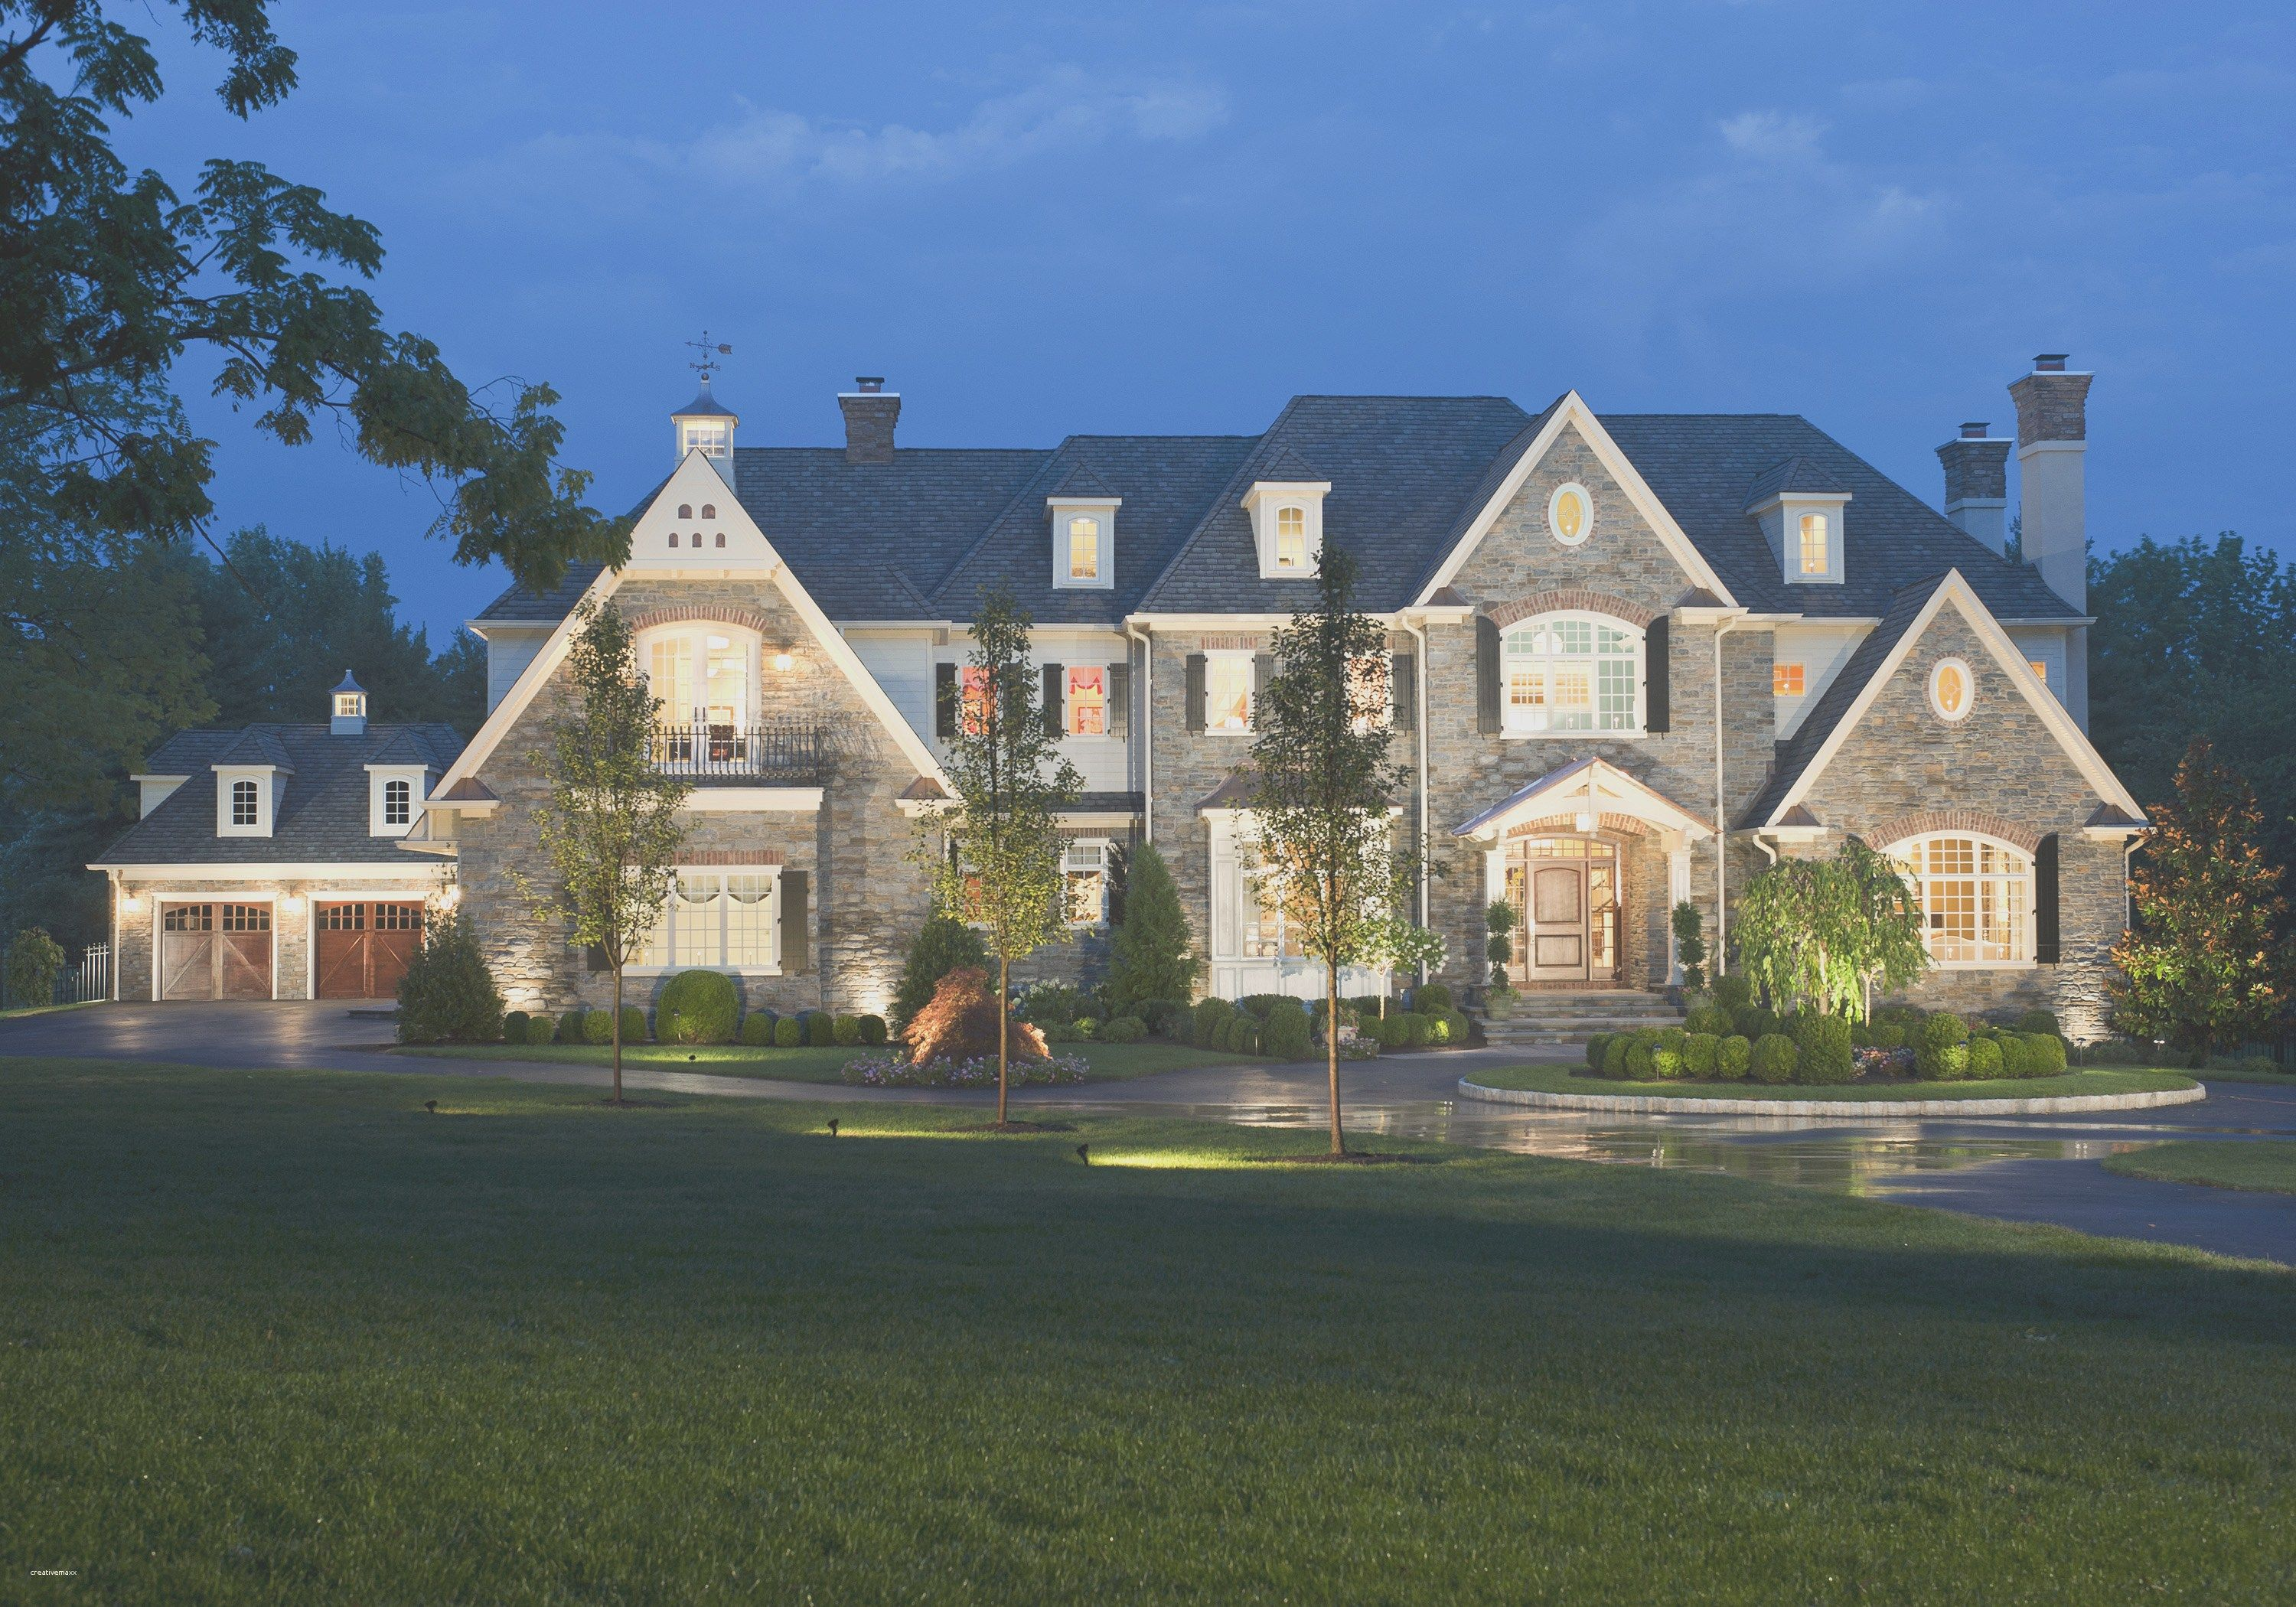 Beautiful Homes Interior Mansions Dream Houses Inspirational Beautiful Homes Interior Mansions Dream Houses 16 Dream House Exterior Mansions House Exterior